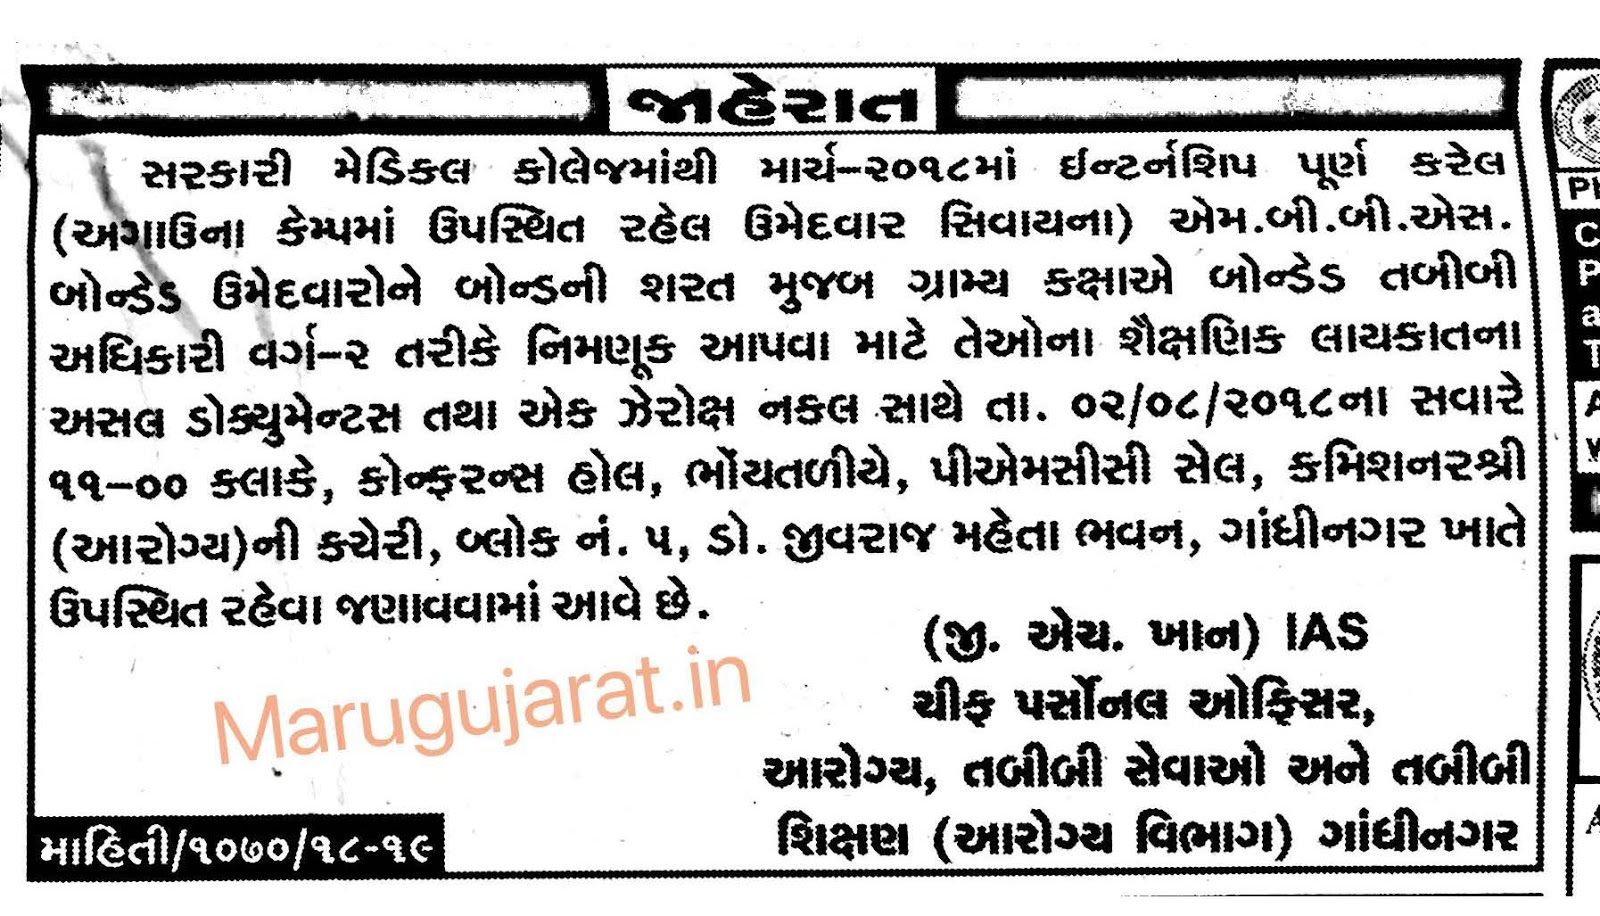 Health Department Recruitment for Medical Officer Class